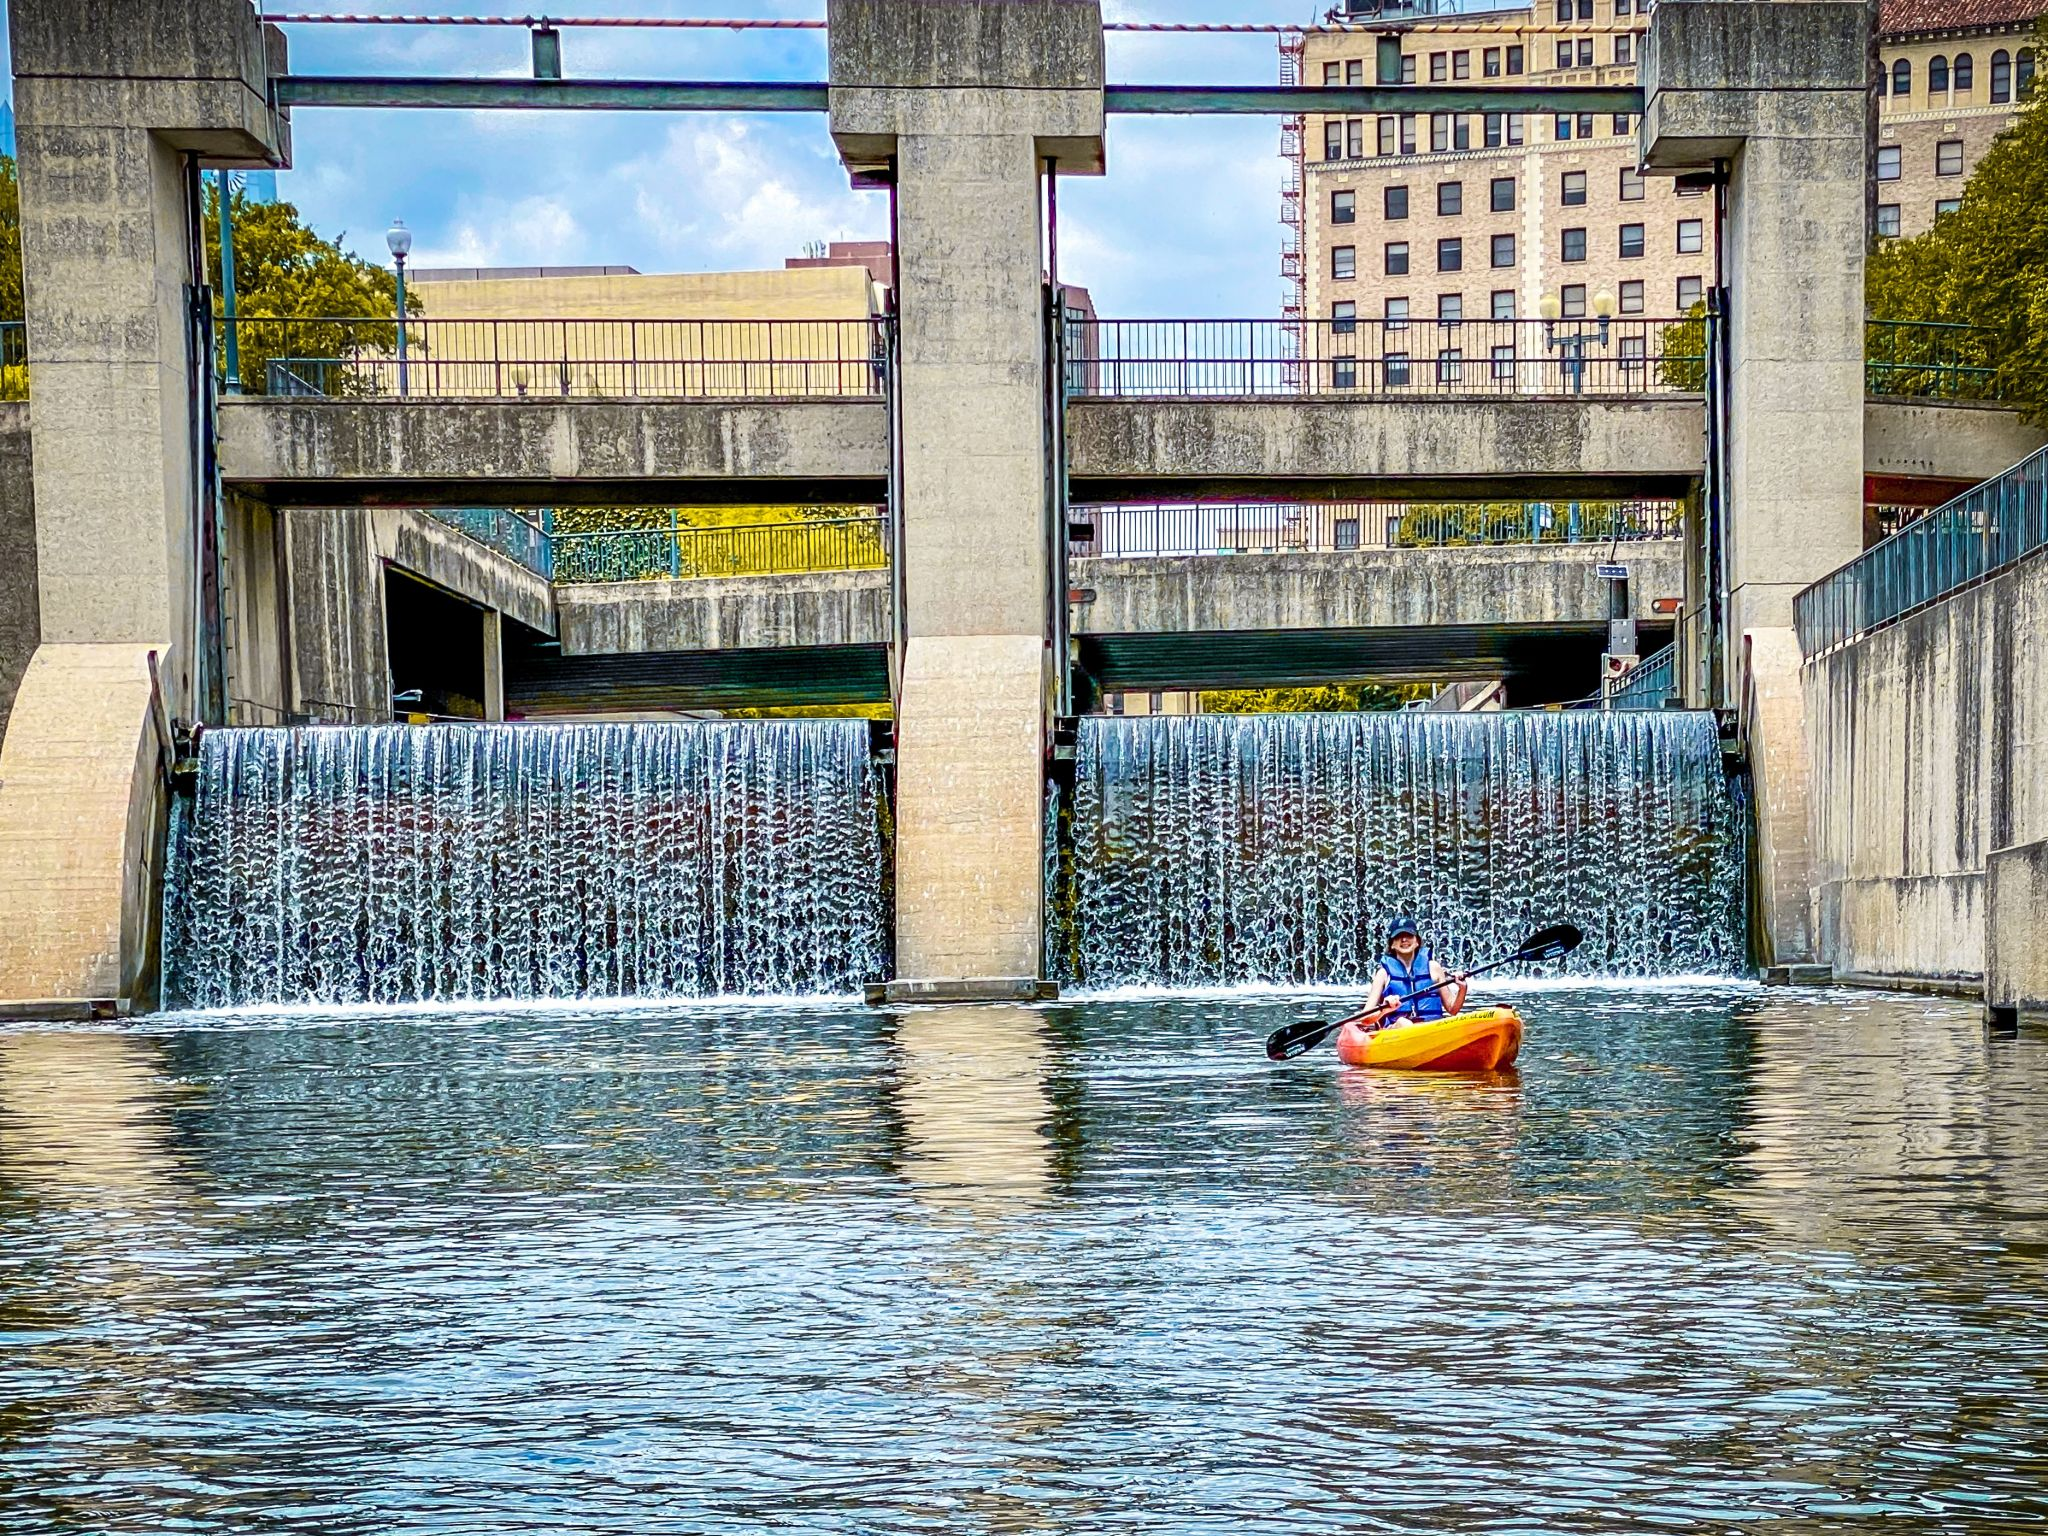 Our trip lasted from 1 to 3 p.m. In that time, we encountered three other groups of kayakers.